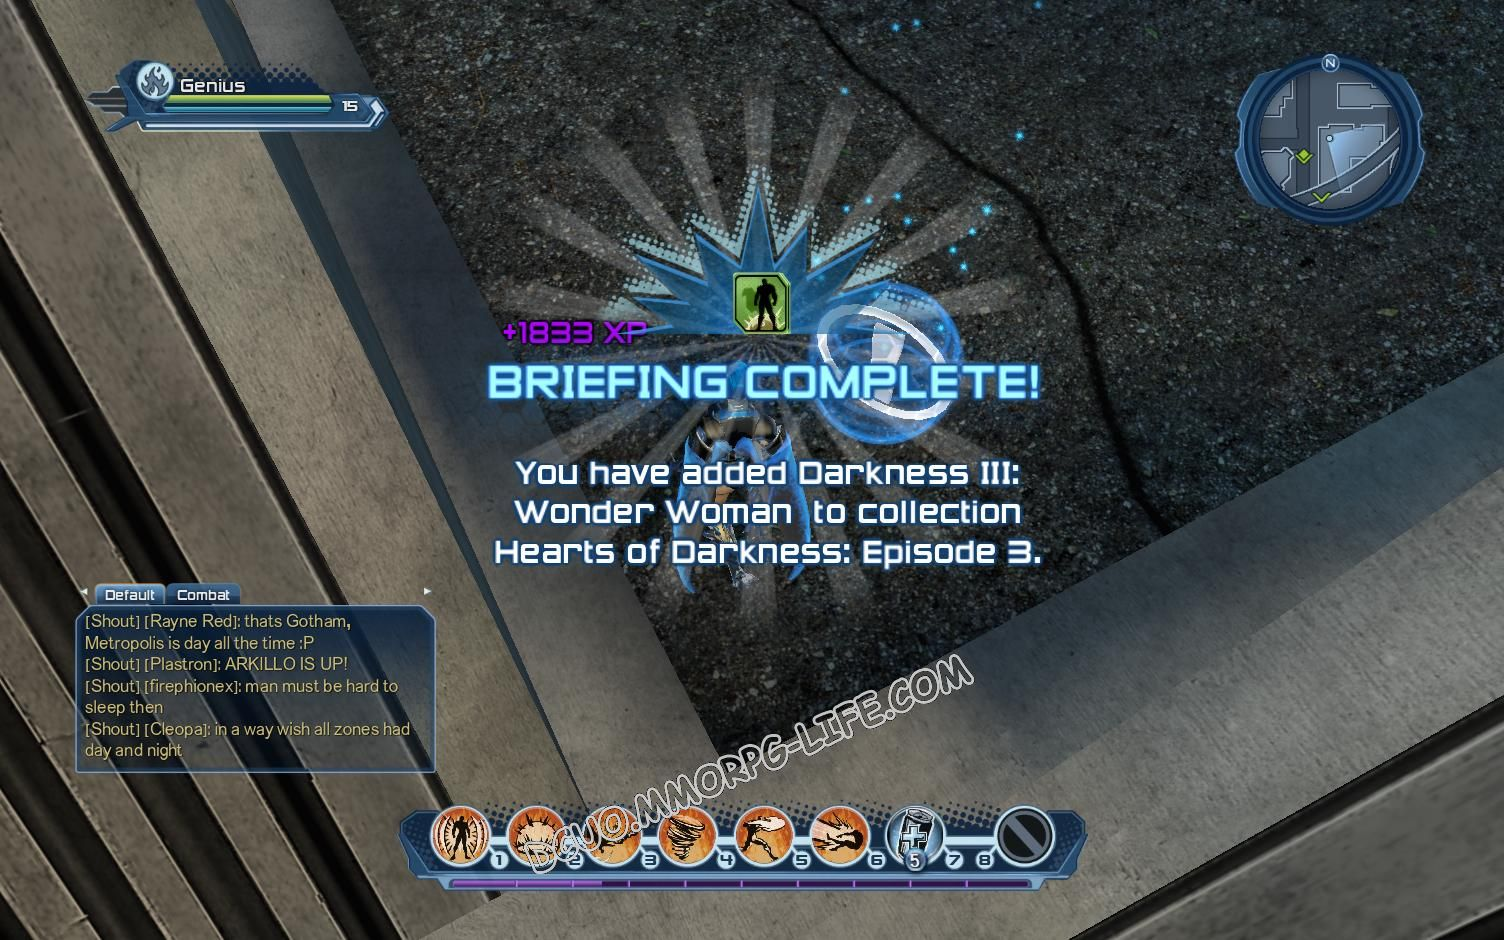 Briefing: Hearts of Darkness: Episode 3, step 6 Darkness III: Wonder Woman  image 1203 middle size